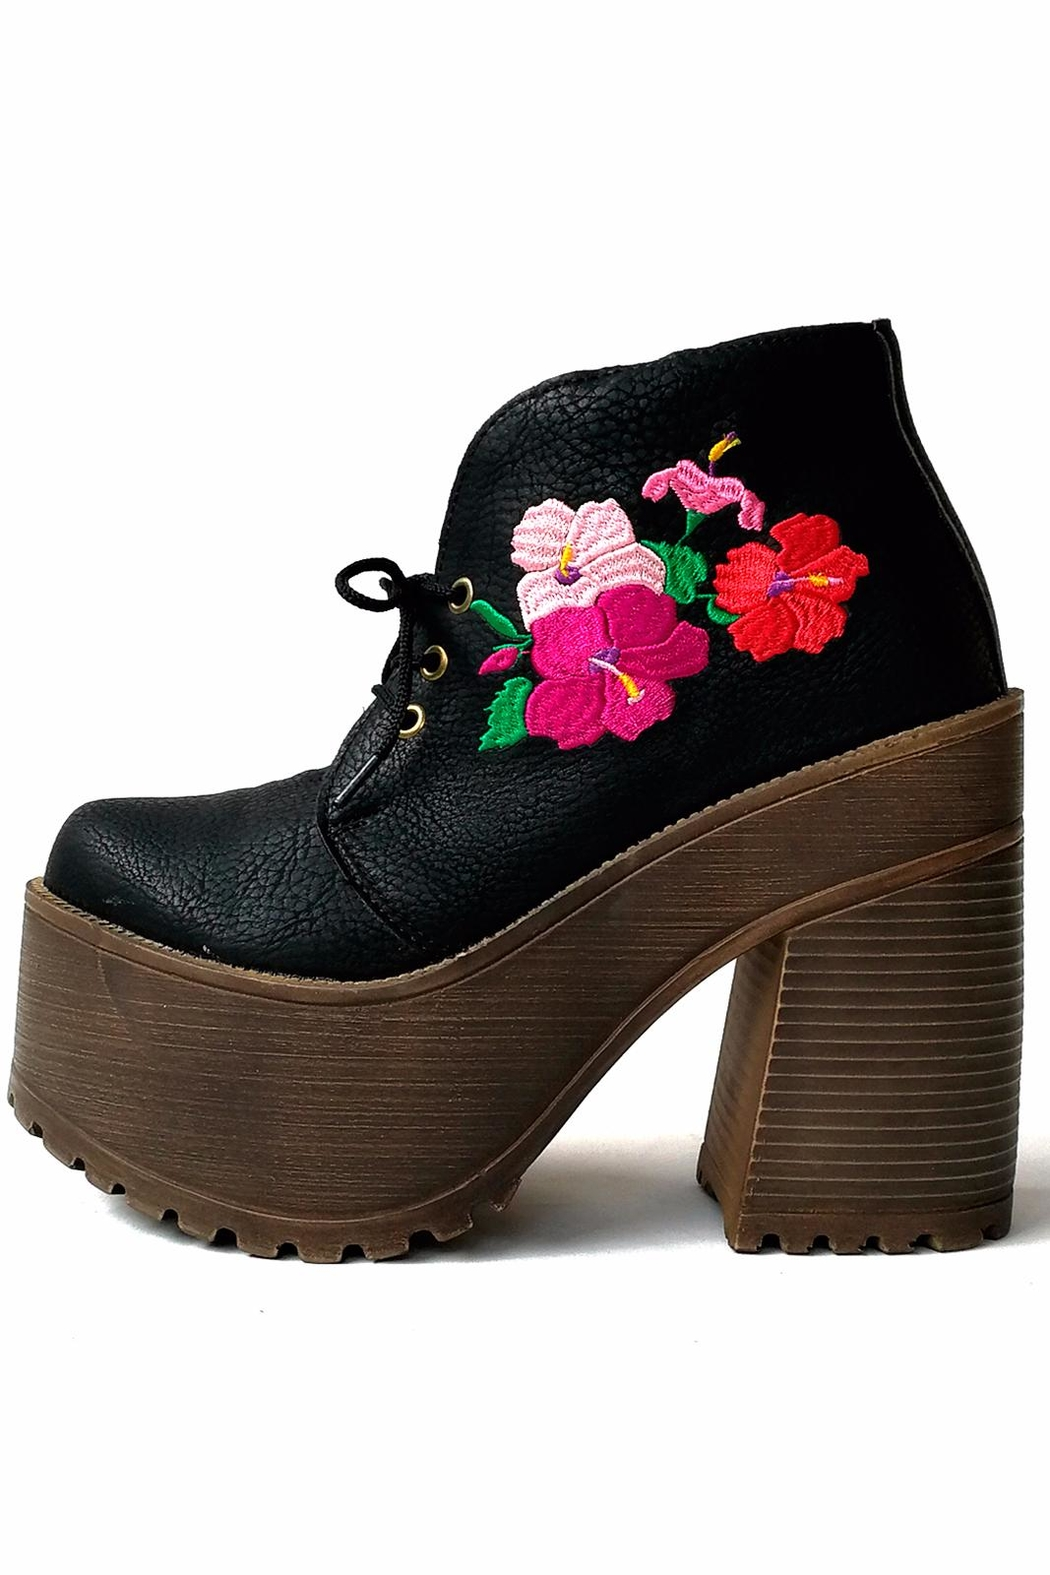 MIYE COLLAZZO Black Embroidered Bootie - Main Image